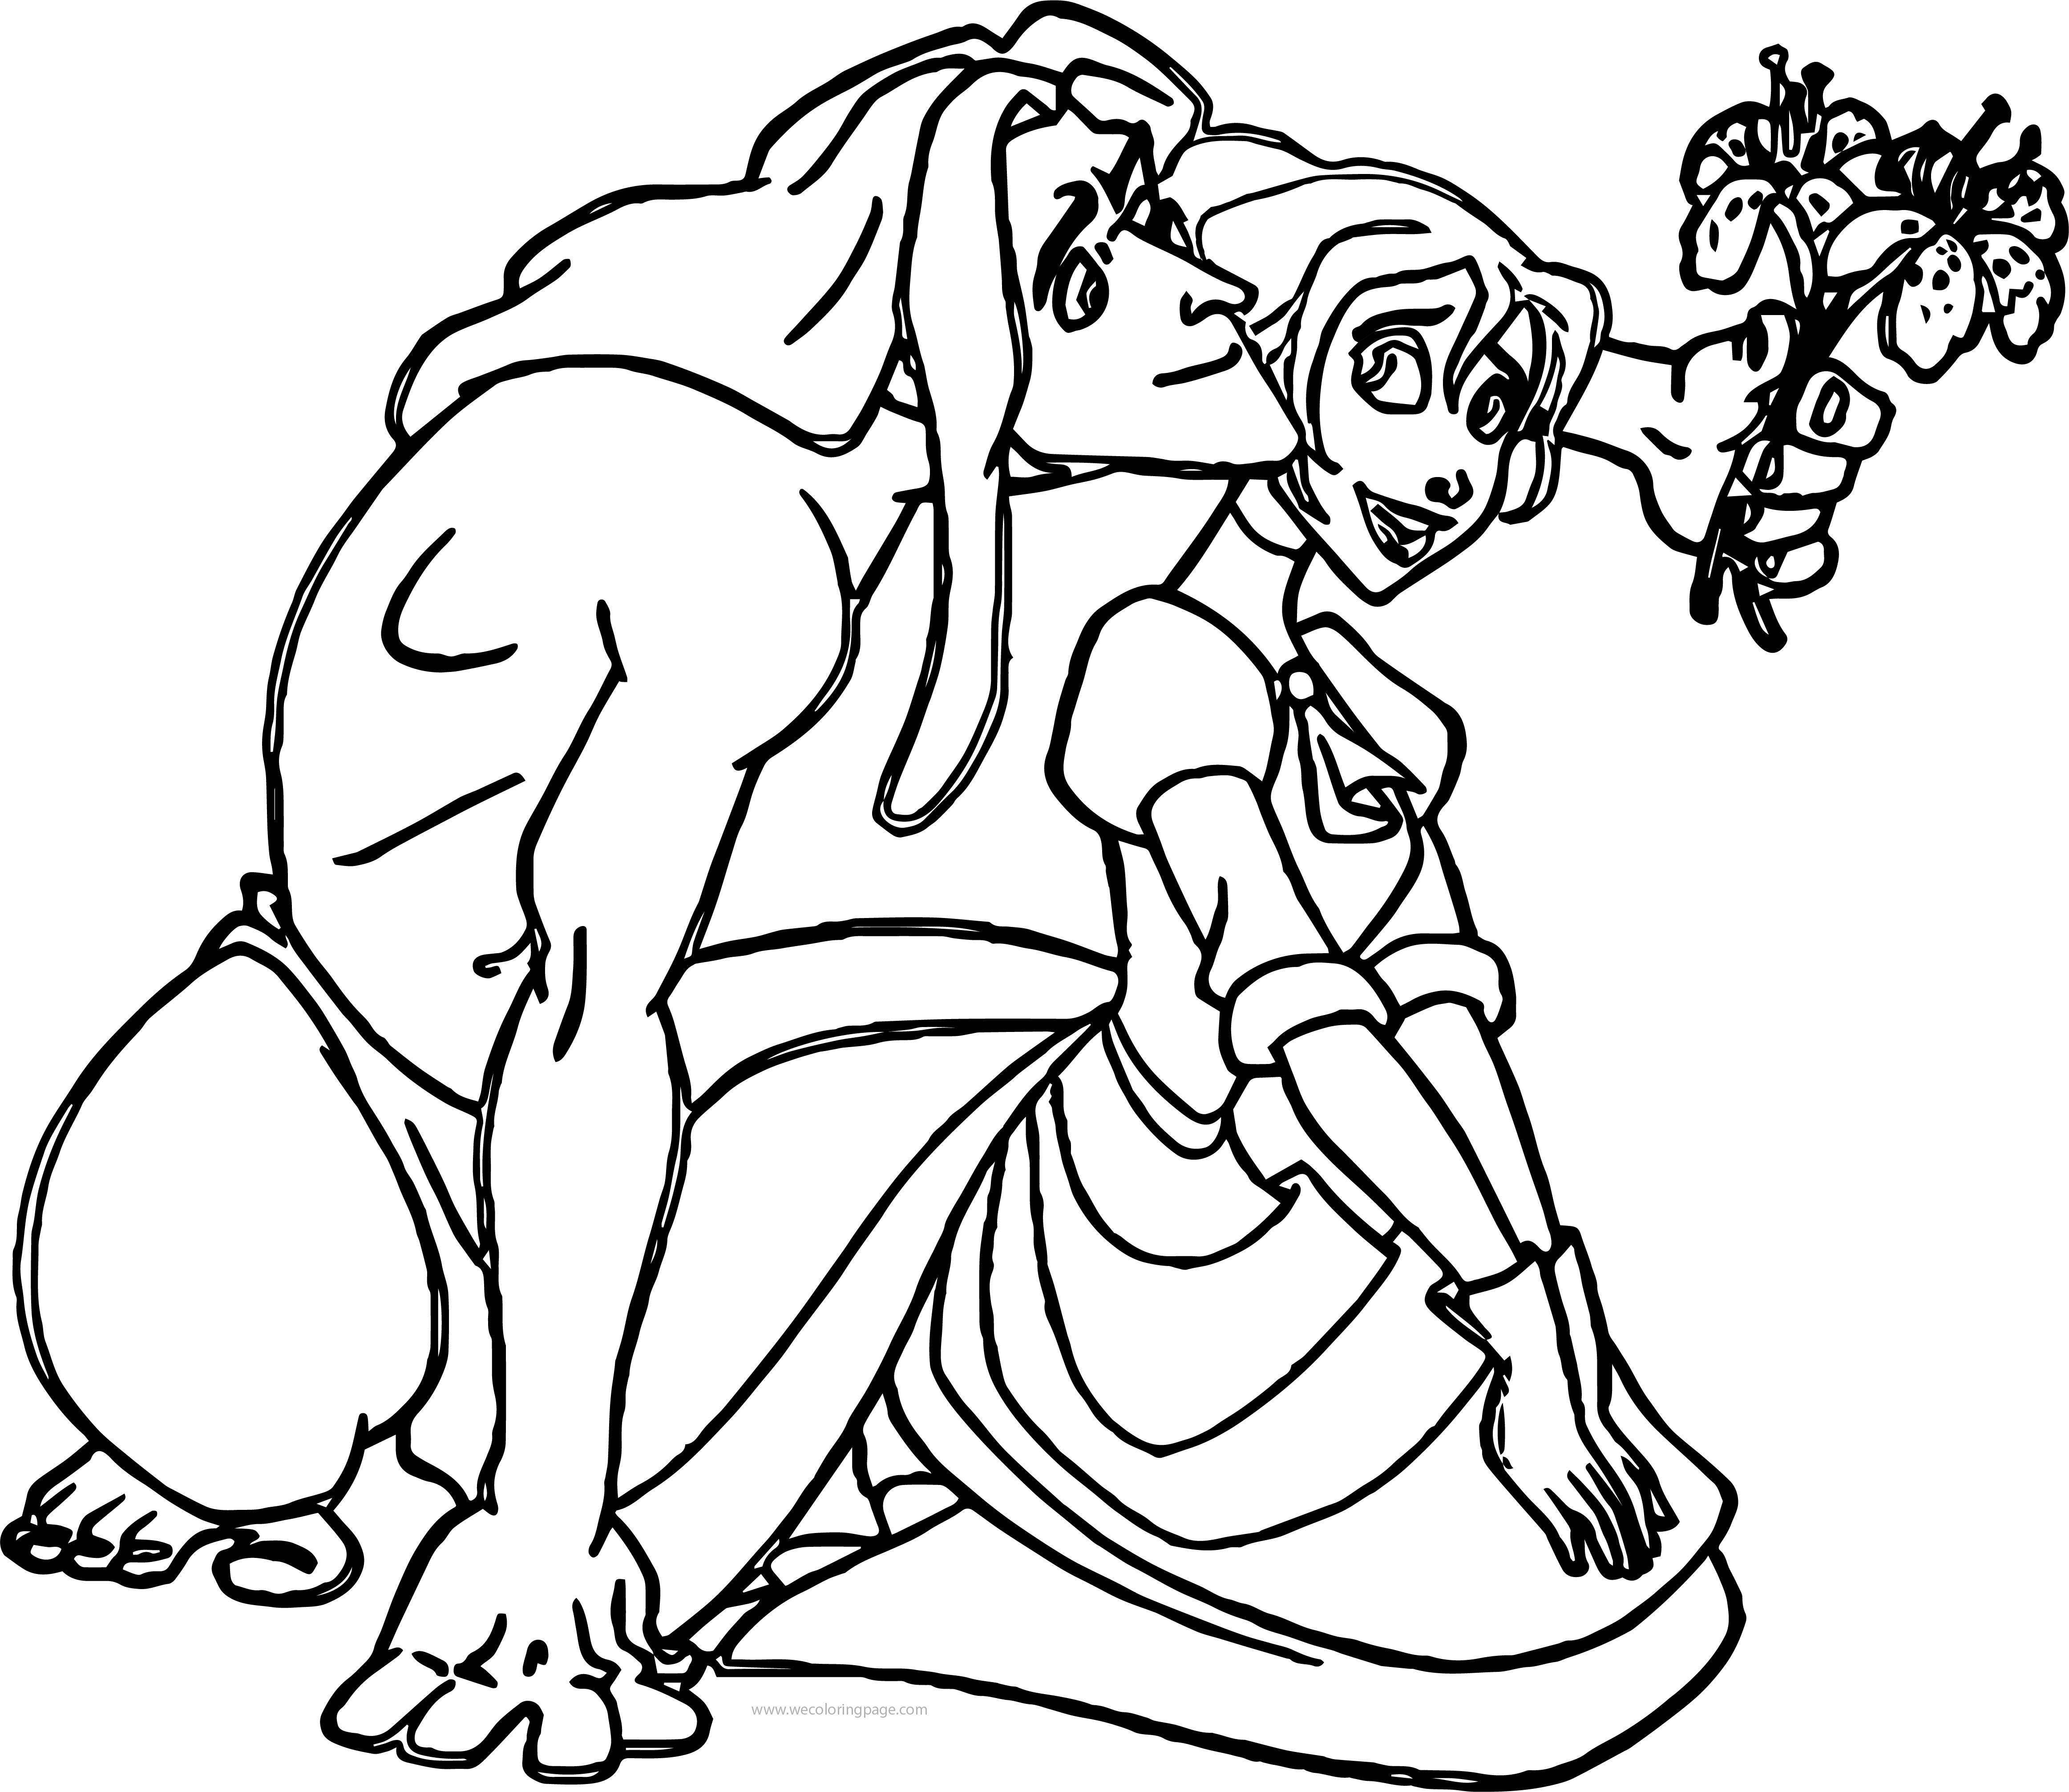 Tarzan And Jane Give Flower Coloring Pages | Wecoloringpage.com